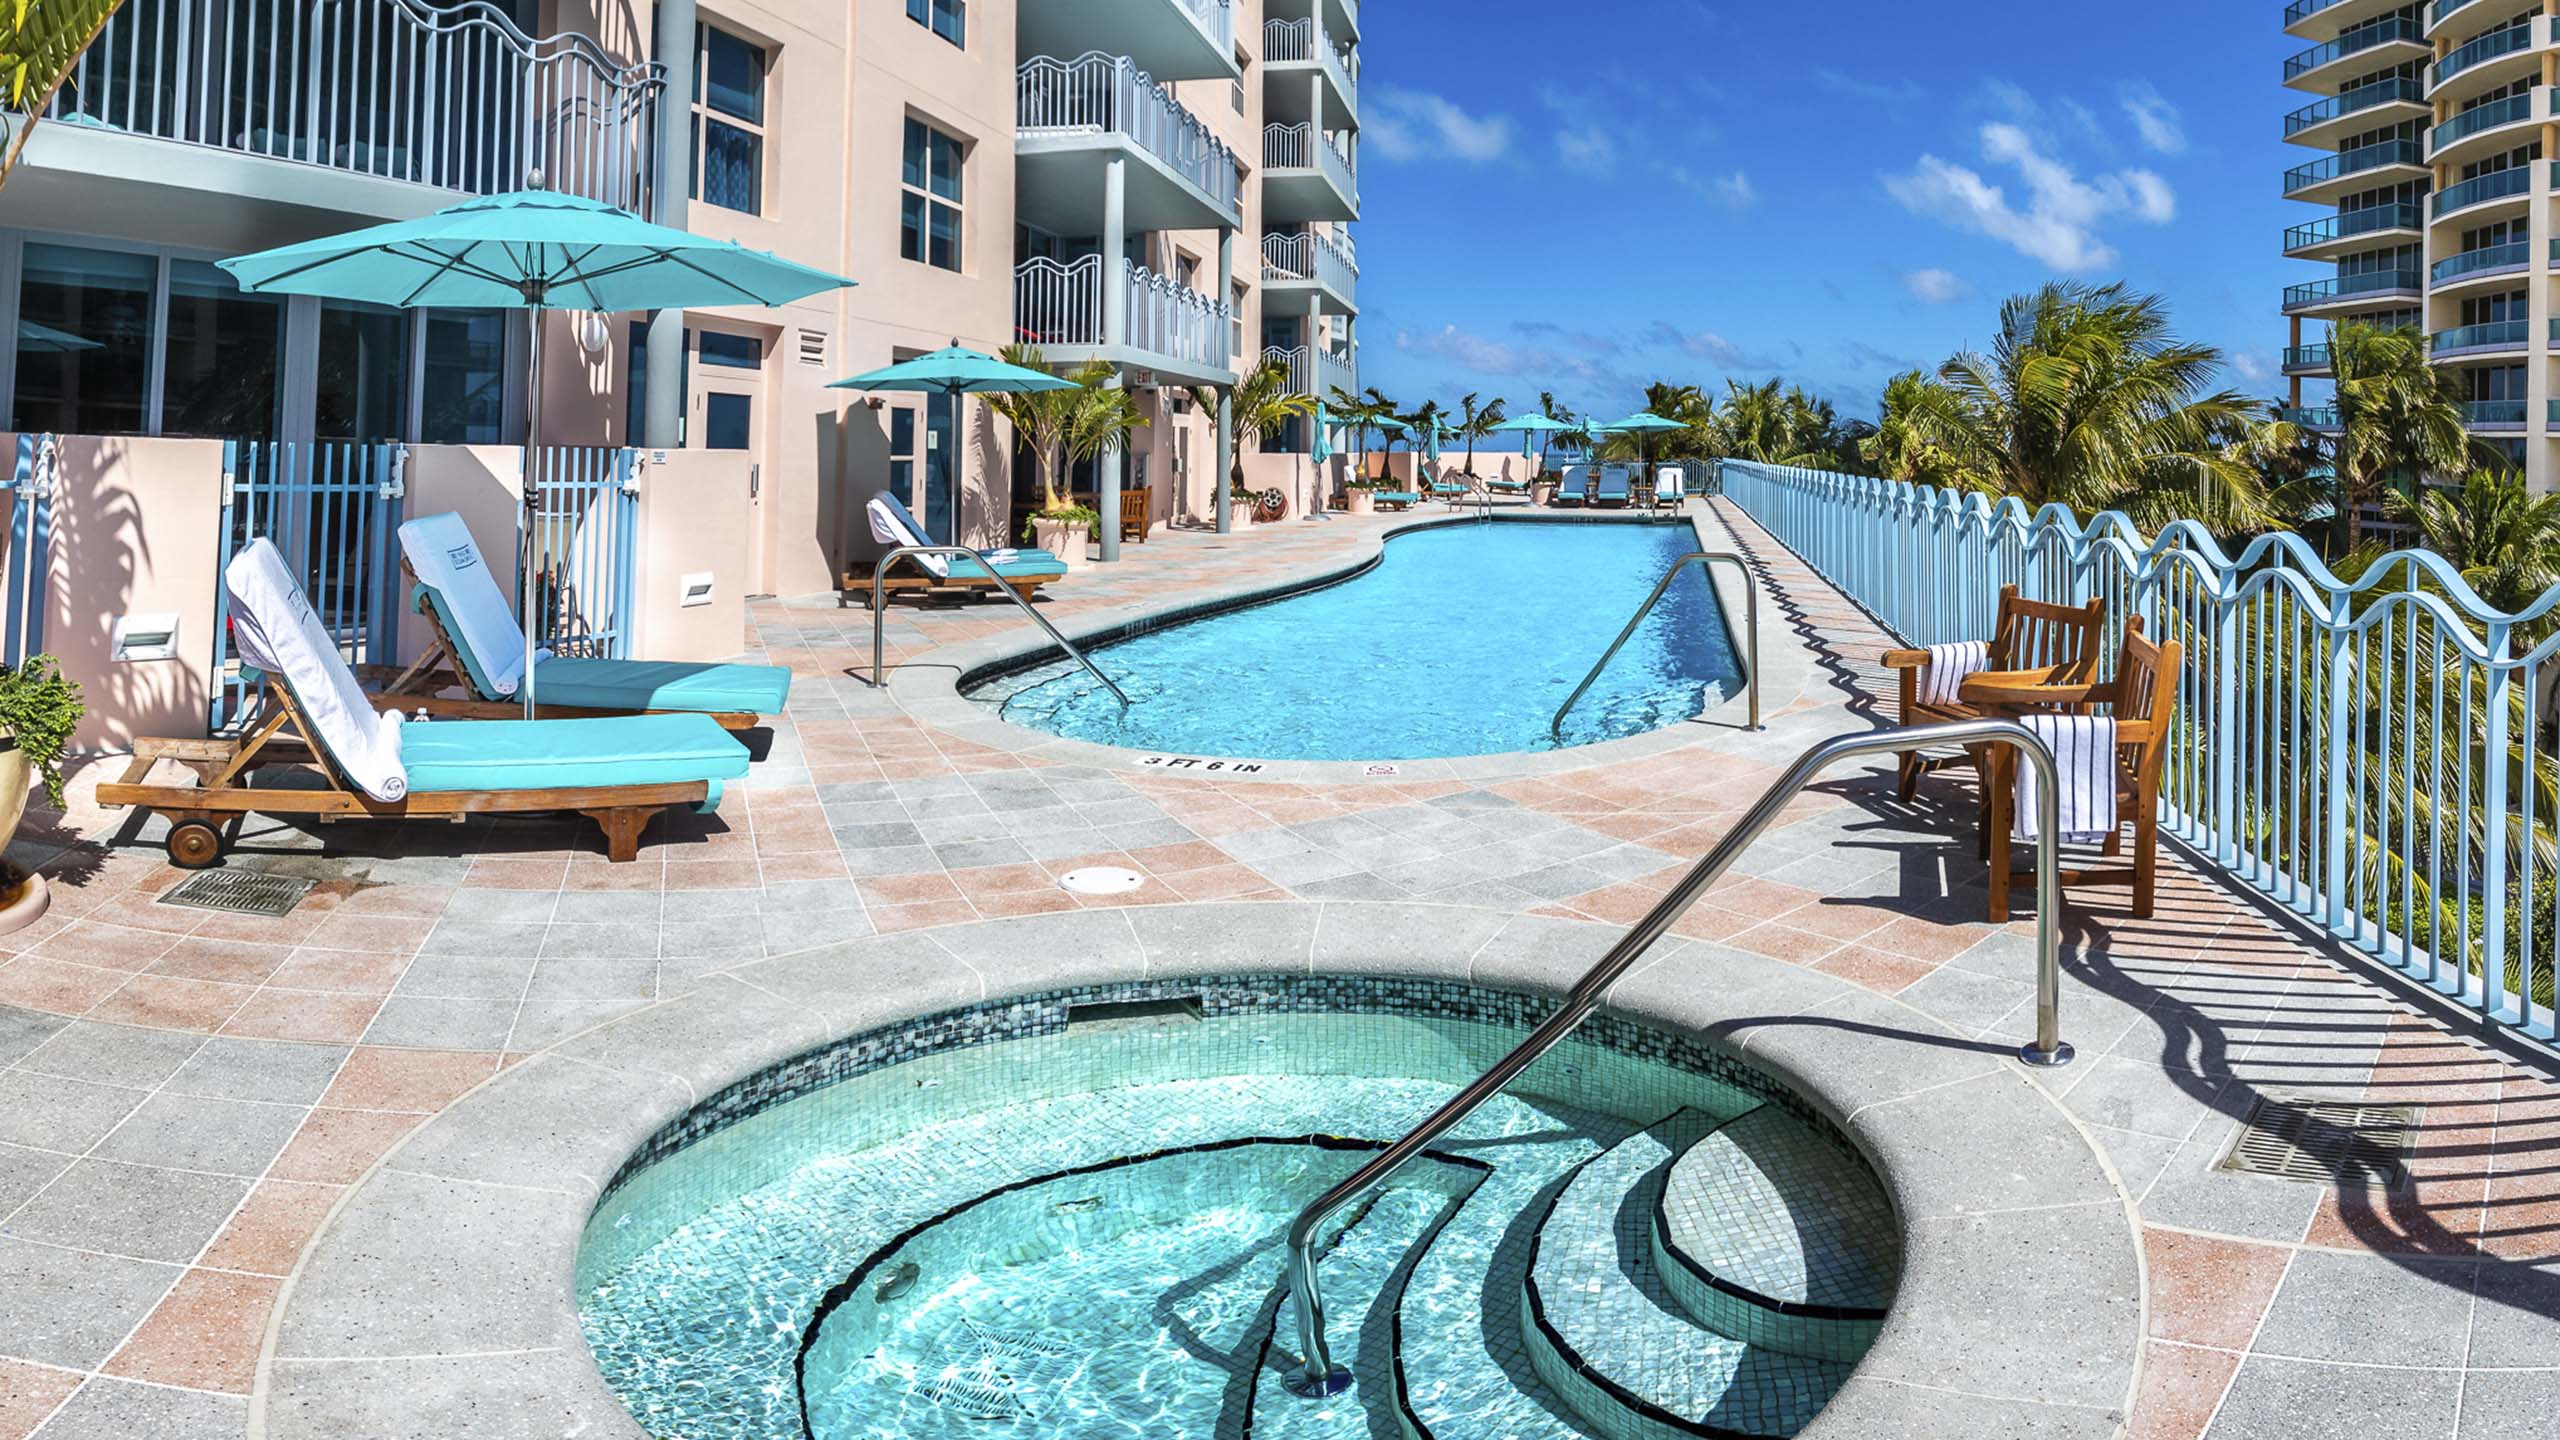 2021 project, Bianco & Midnight Pearl 25mm Outdoor Pool